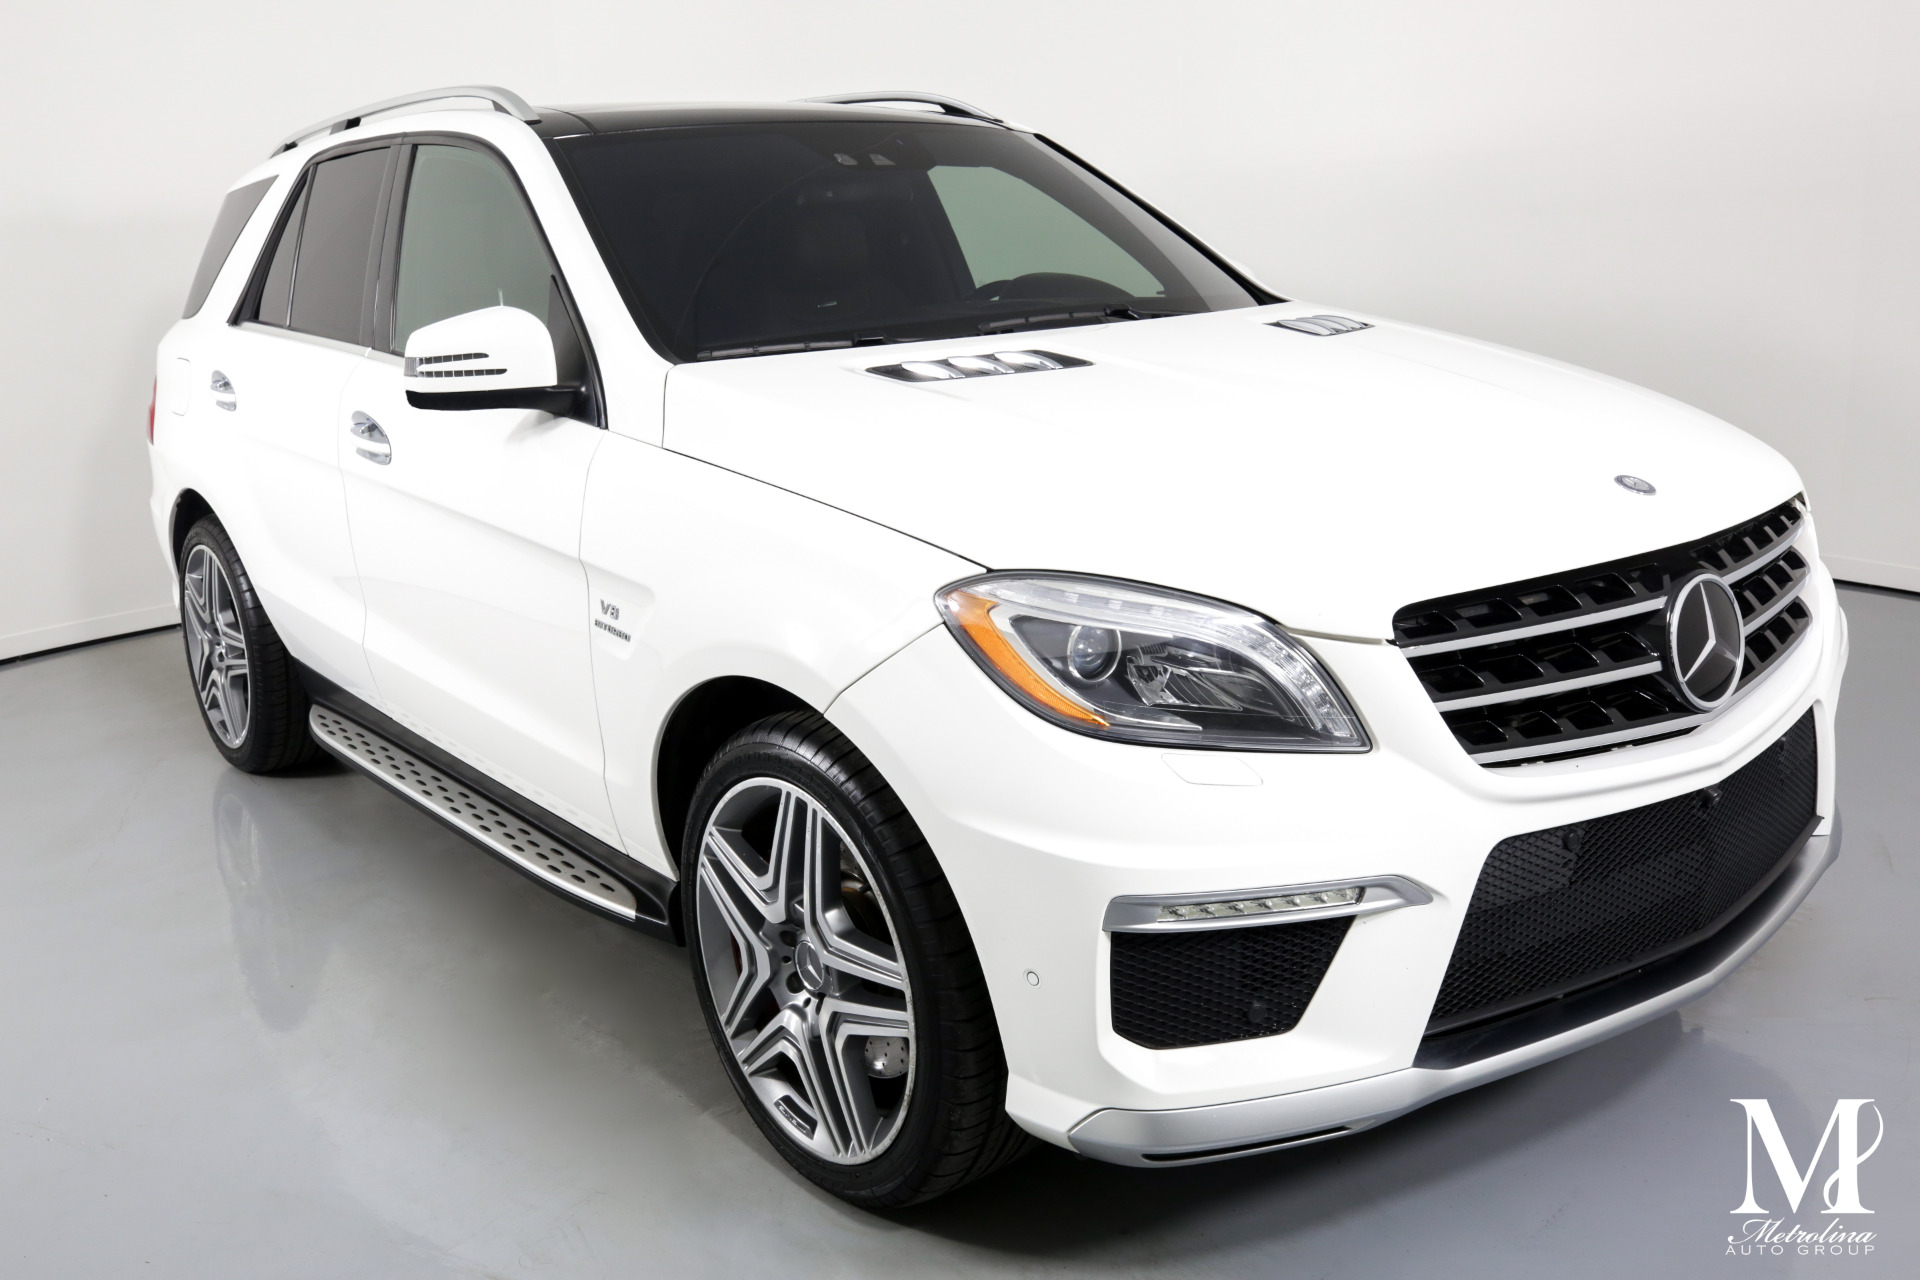 Used 2015 Mercedes-Benz M-Class ML 63 AMG for sale Sold at Metrolina Auto Group in Charlotte NC 28217 - 2